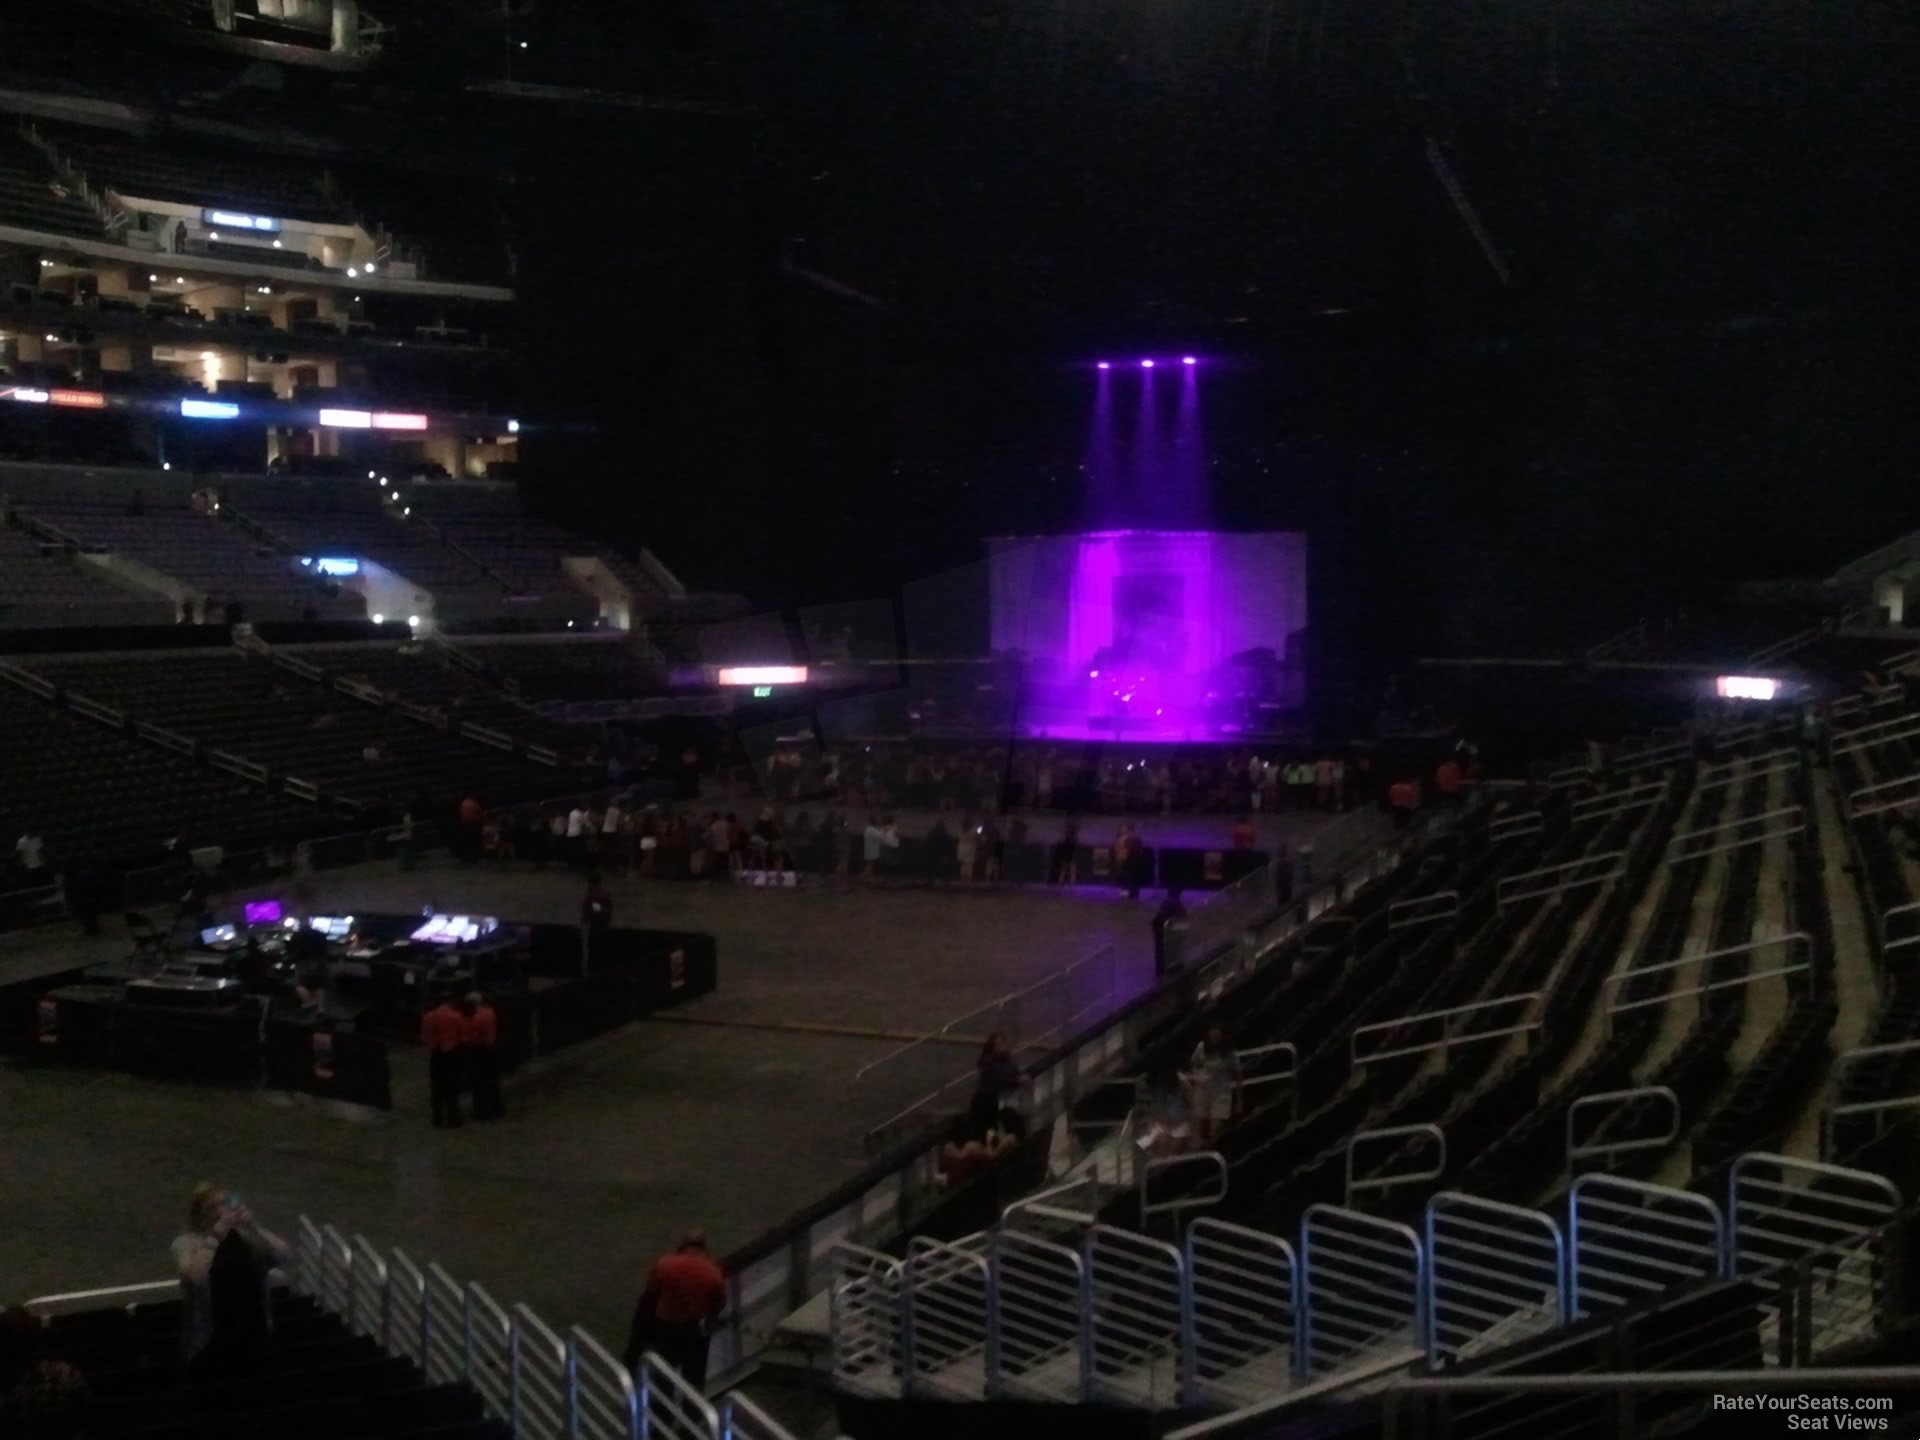 staples center section 105 concert seating - rateyourseats